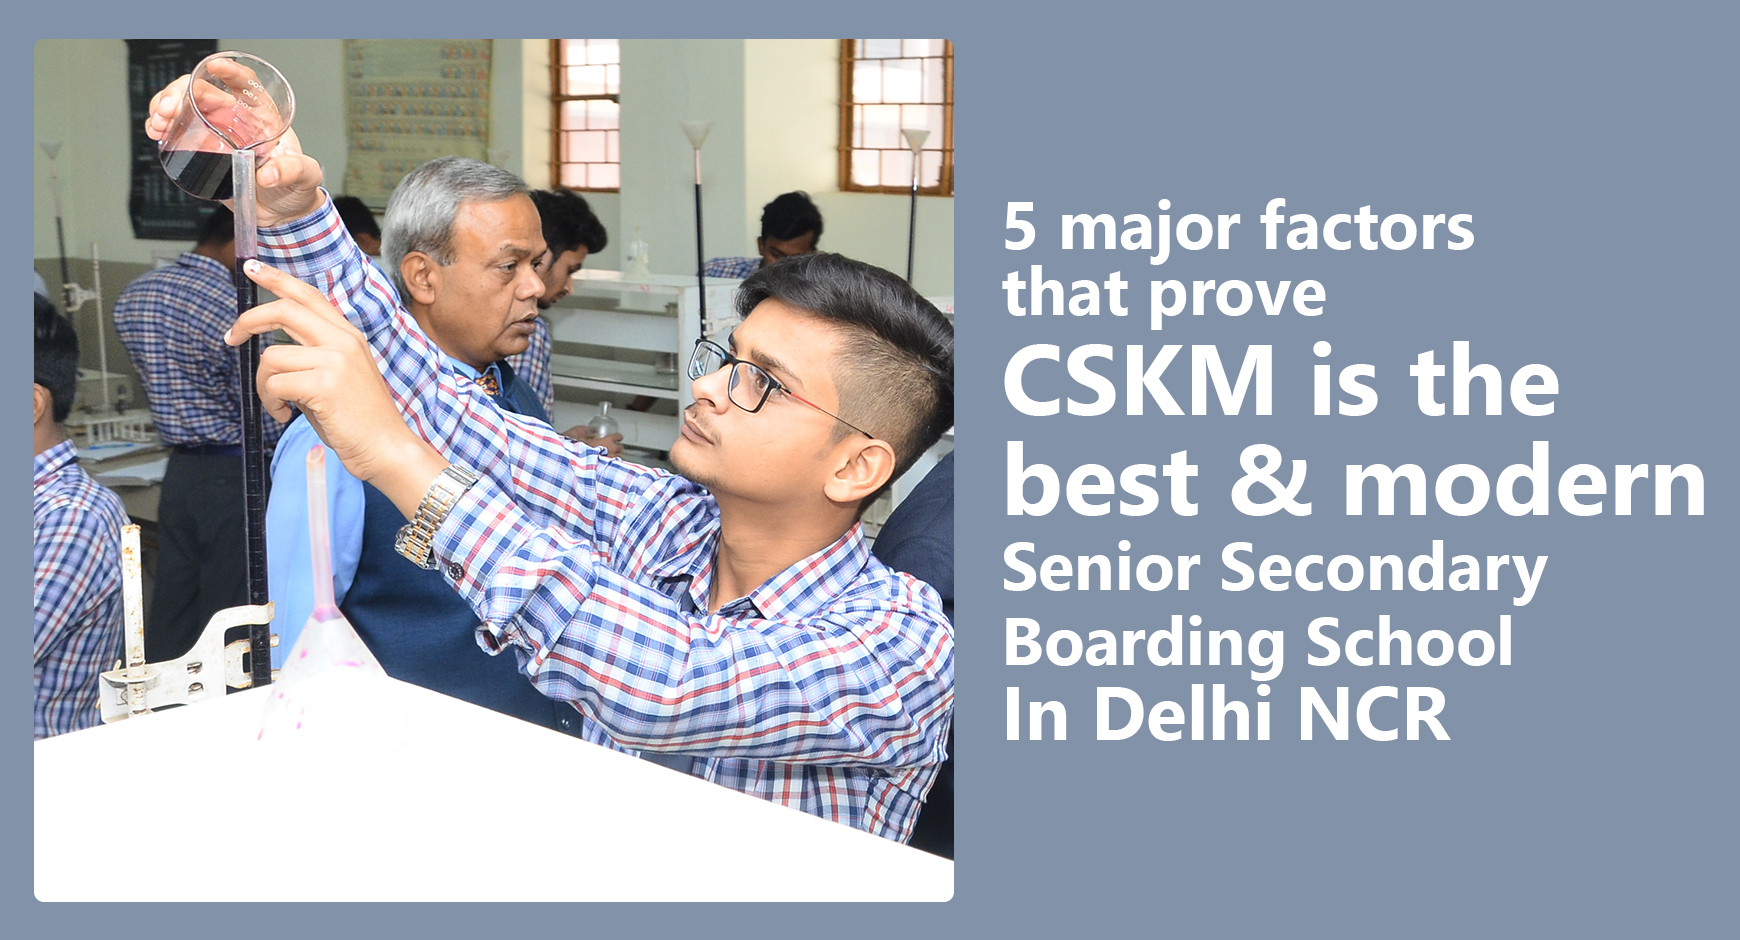 5 major factors that prove CSKM the best & modern Senior Secondary Boarding School in Delhi NCR